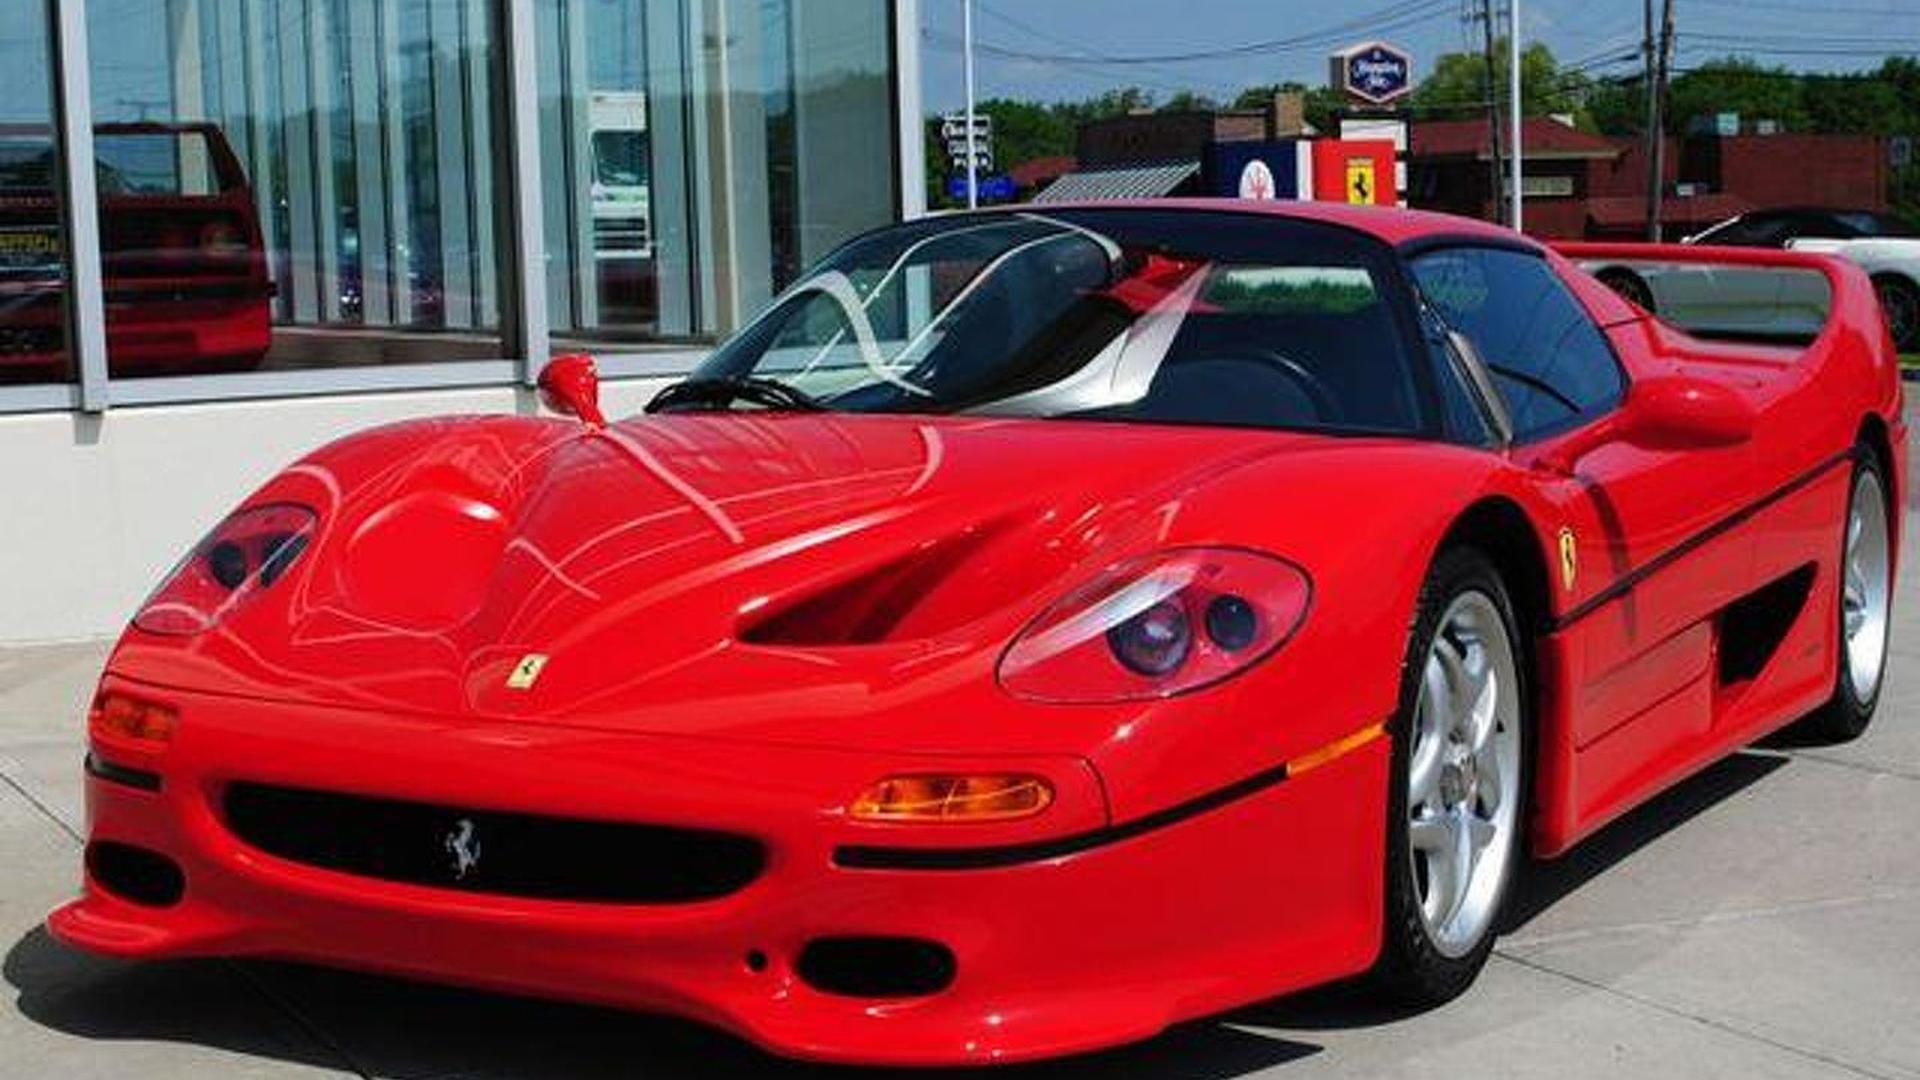 1990 Ferrari F40 1995 F50 And 2003 Enzo Available On Sale